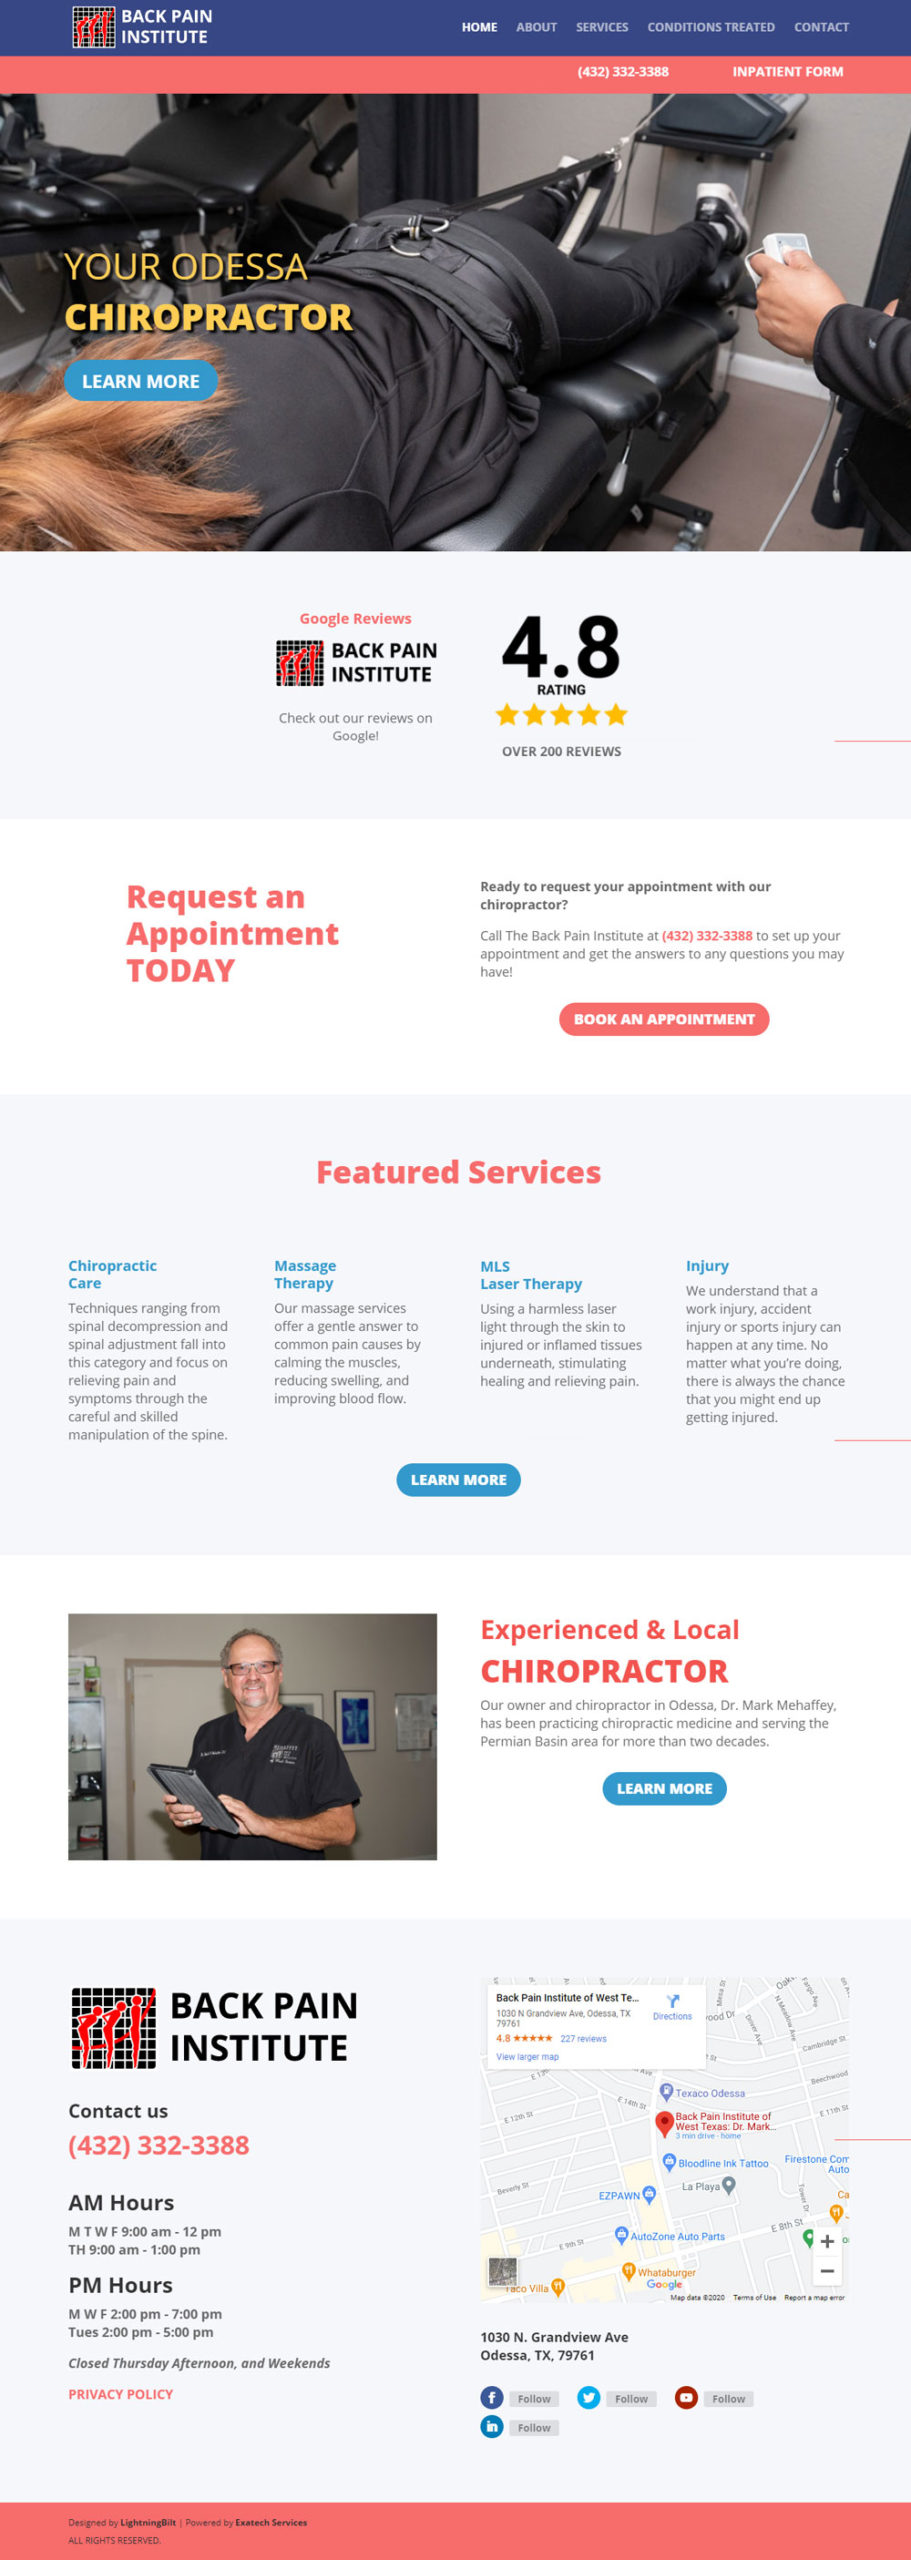 Home web page for Back Pain Institute Website